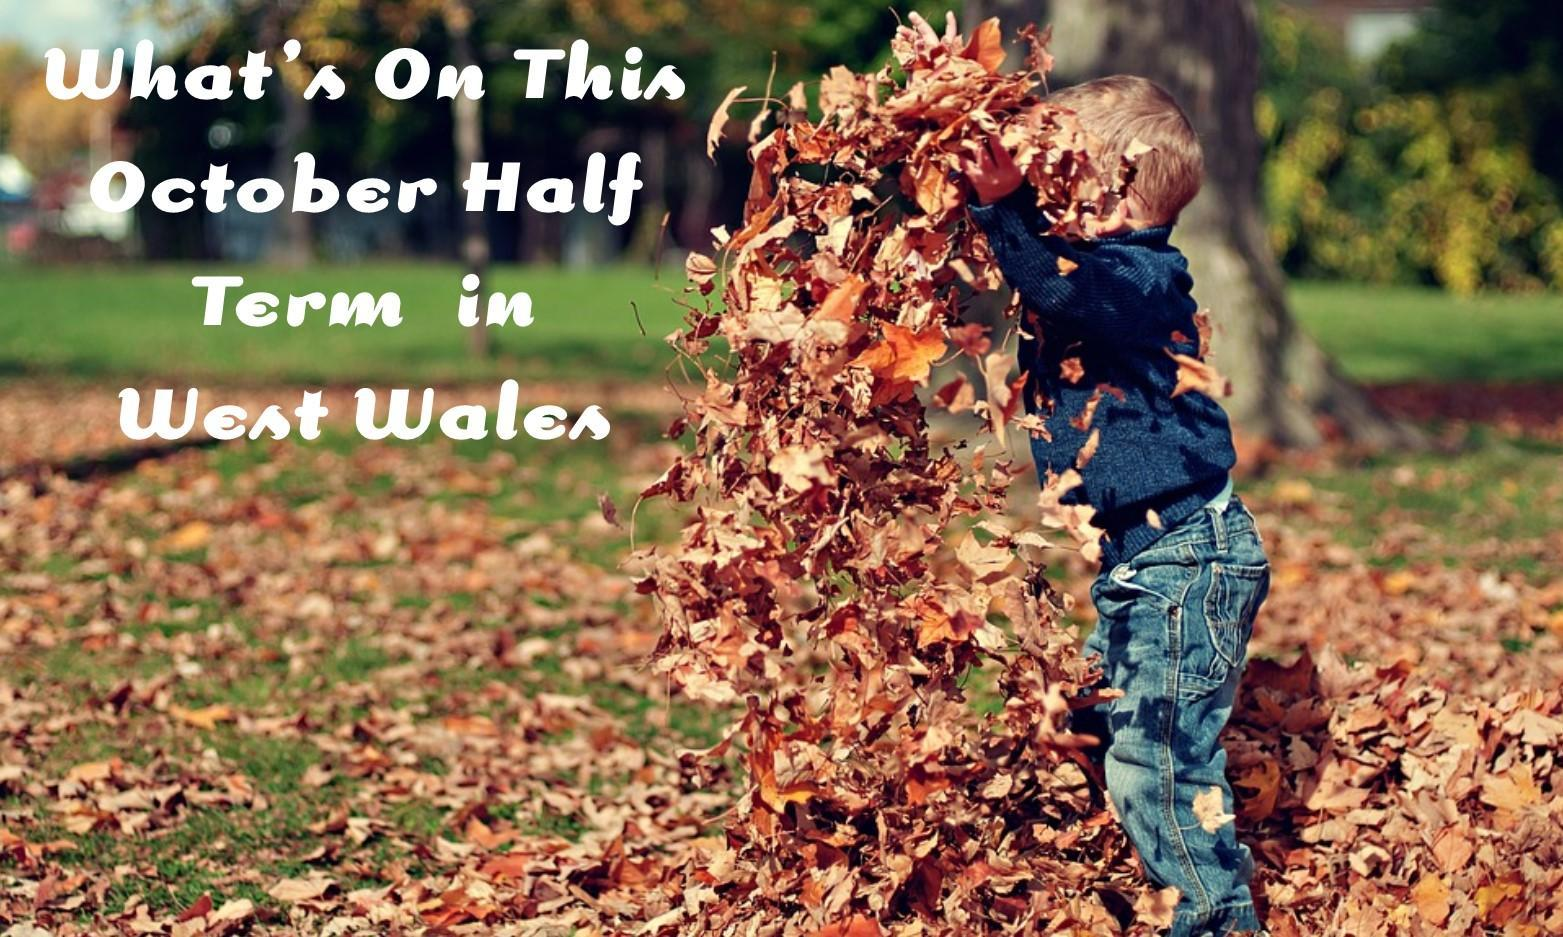 October Half Term Events in West Wales 2018